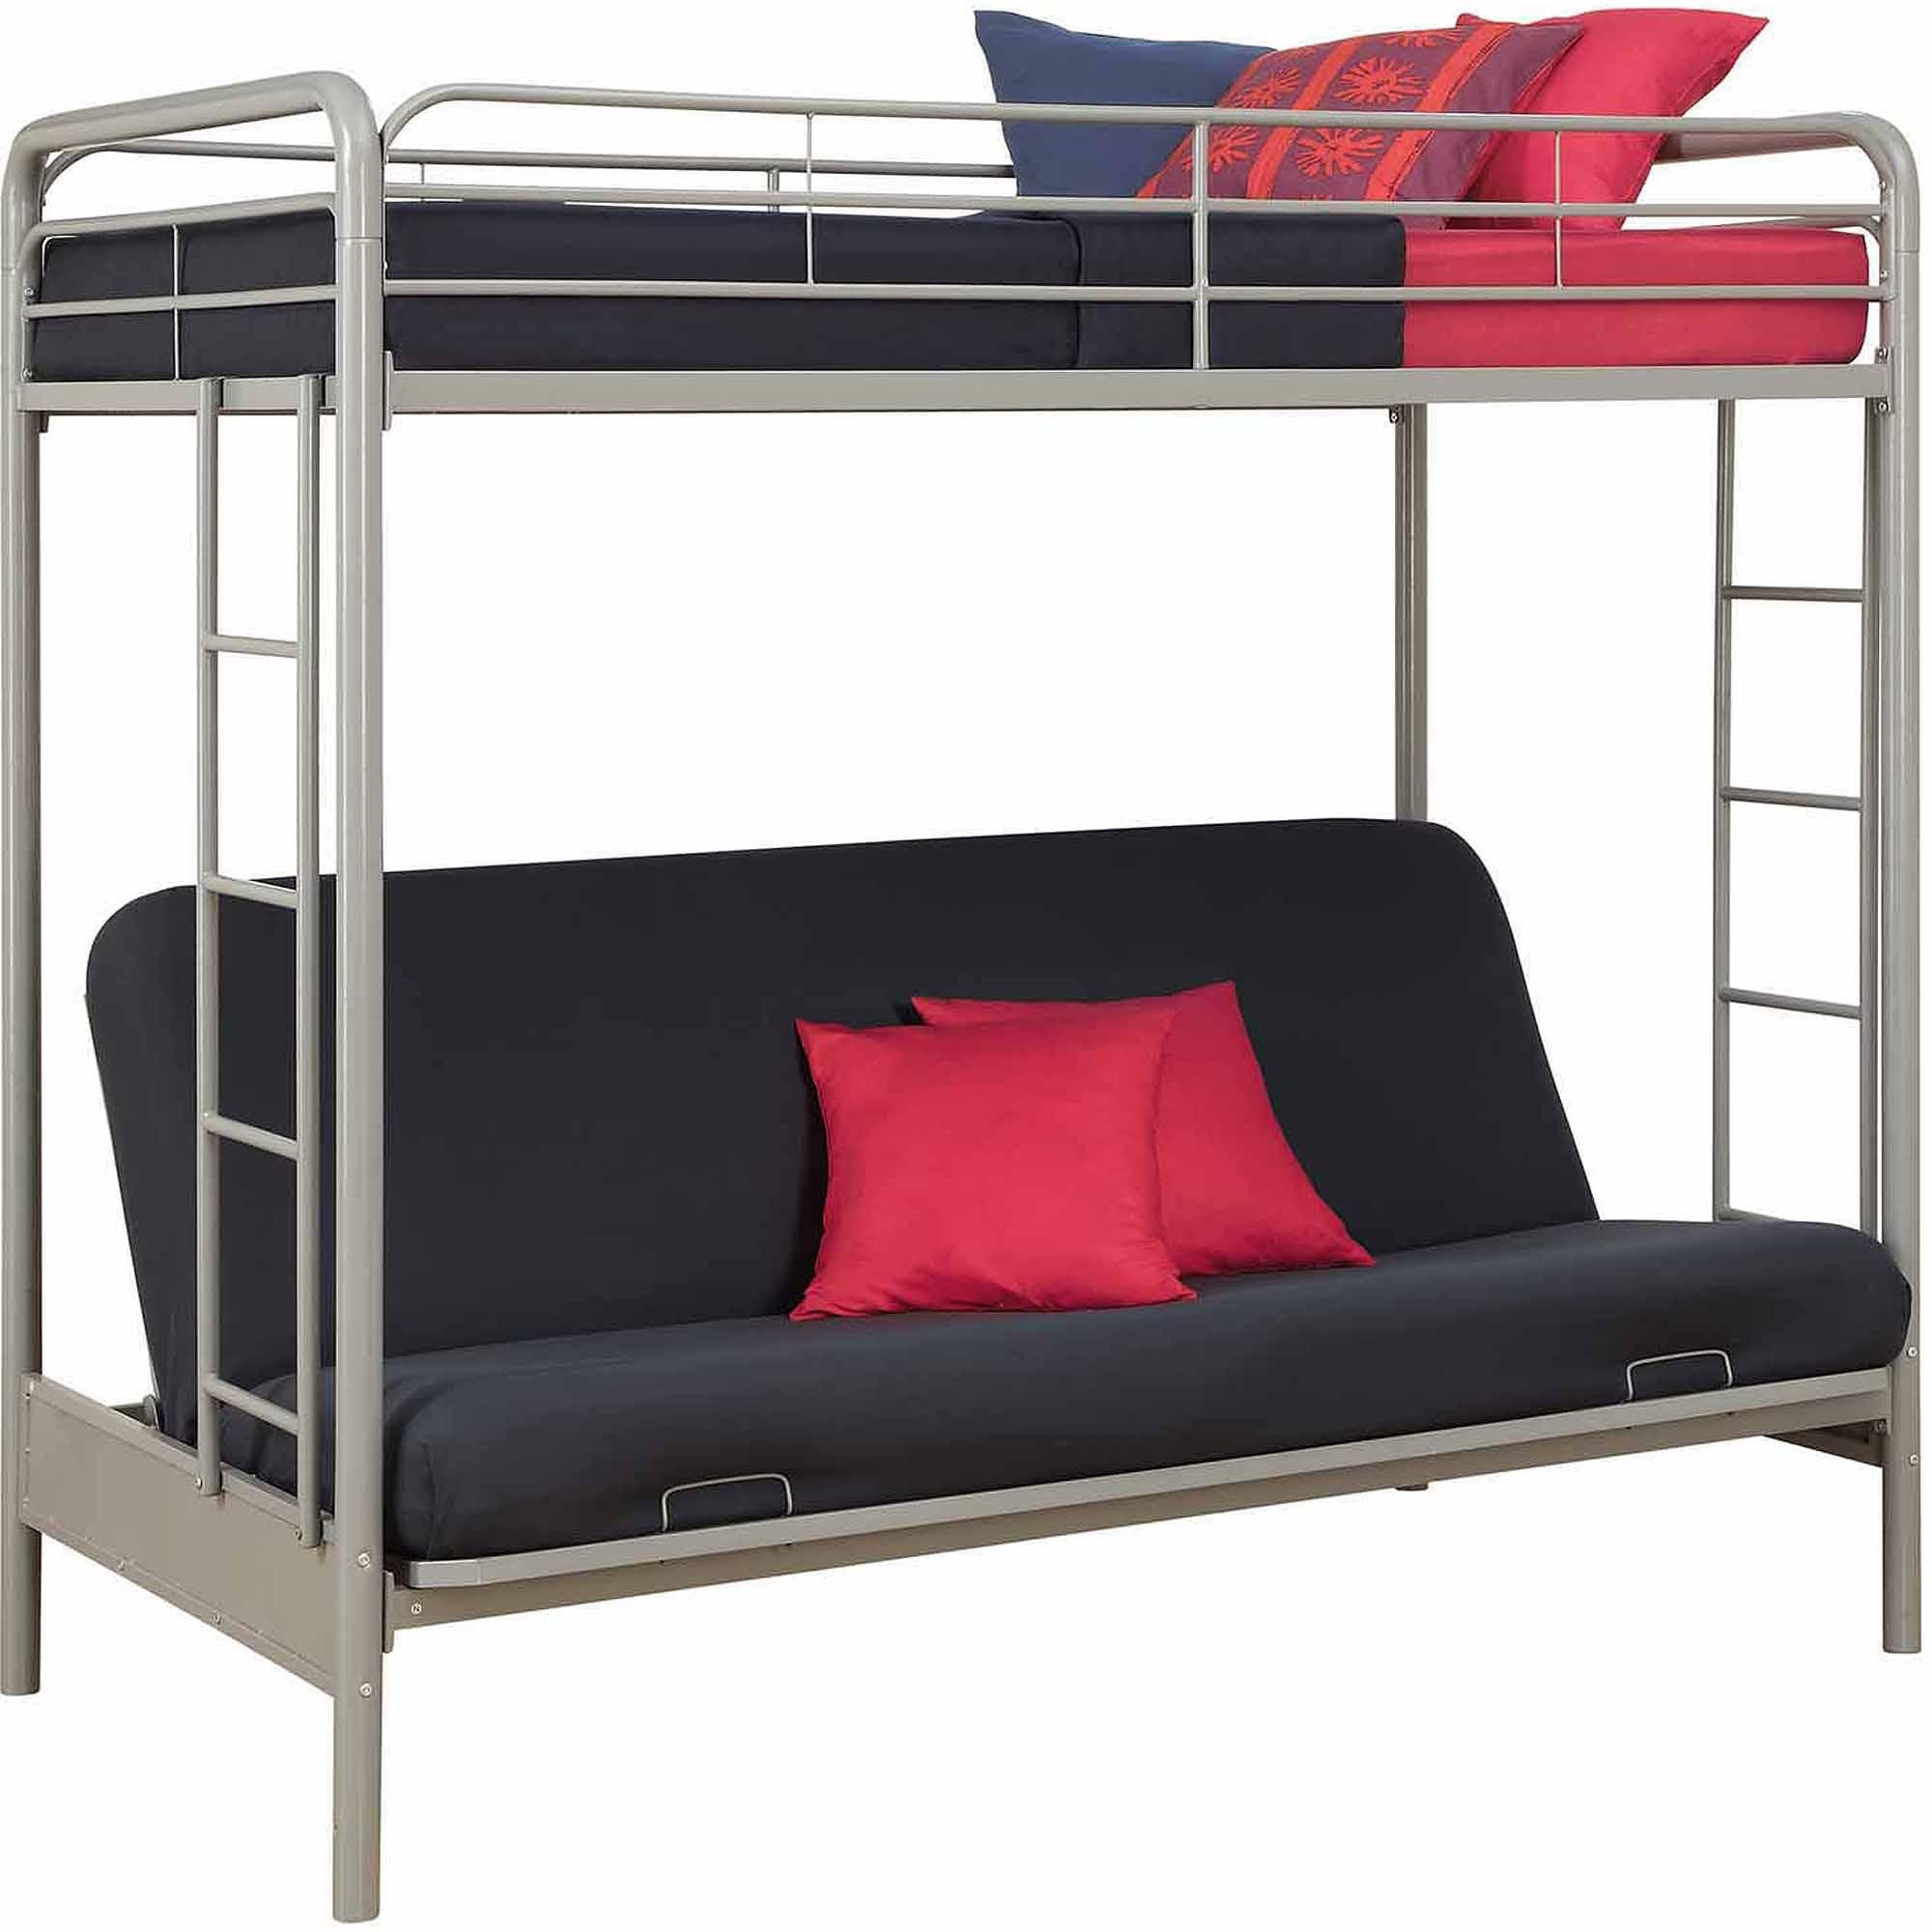 Bunk Beds : Futon With Bunk Bed On Top Futon Loft Bed Kmart Bunk Pertaining To Kmart Futon Beds (View 18 of 20)